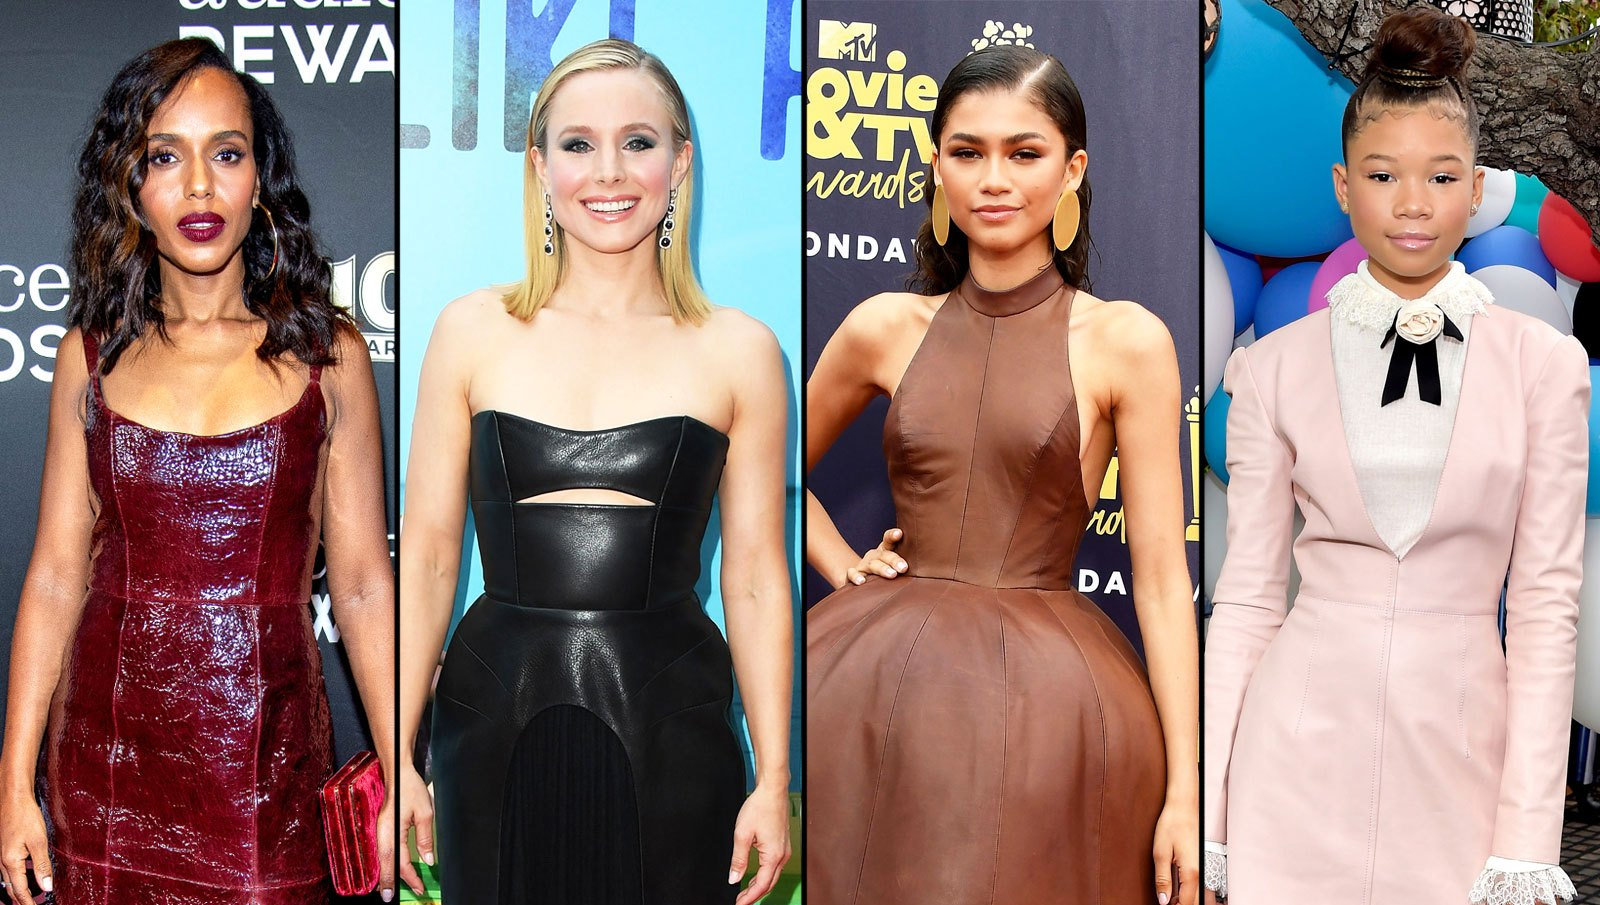 kerry-washington,-storm-reed,-zendaya,-kristen-bell